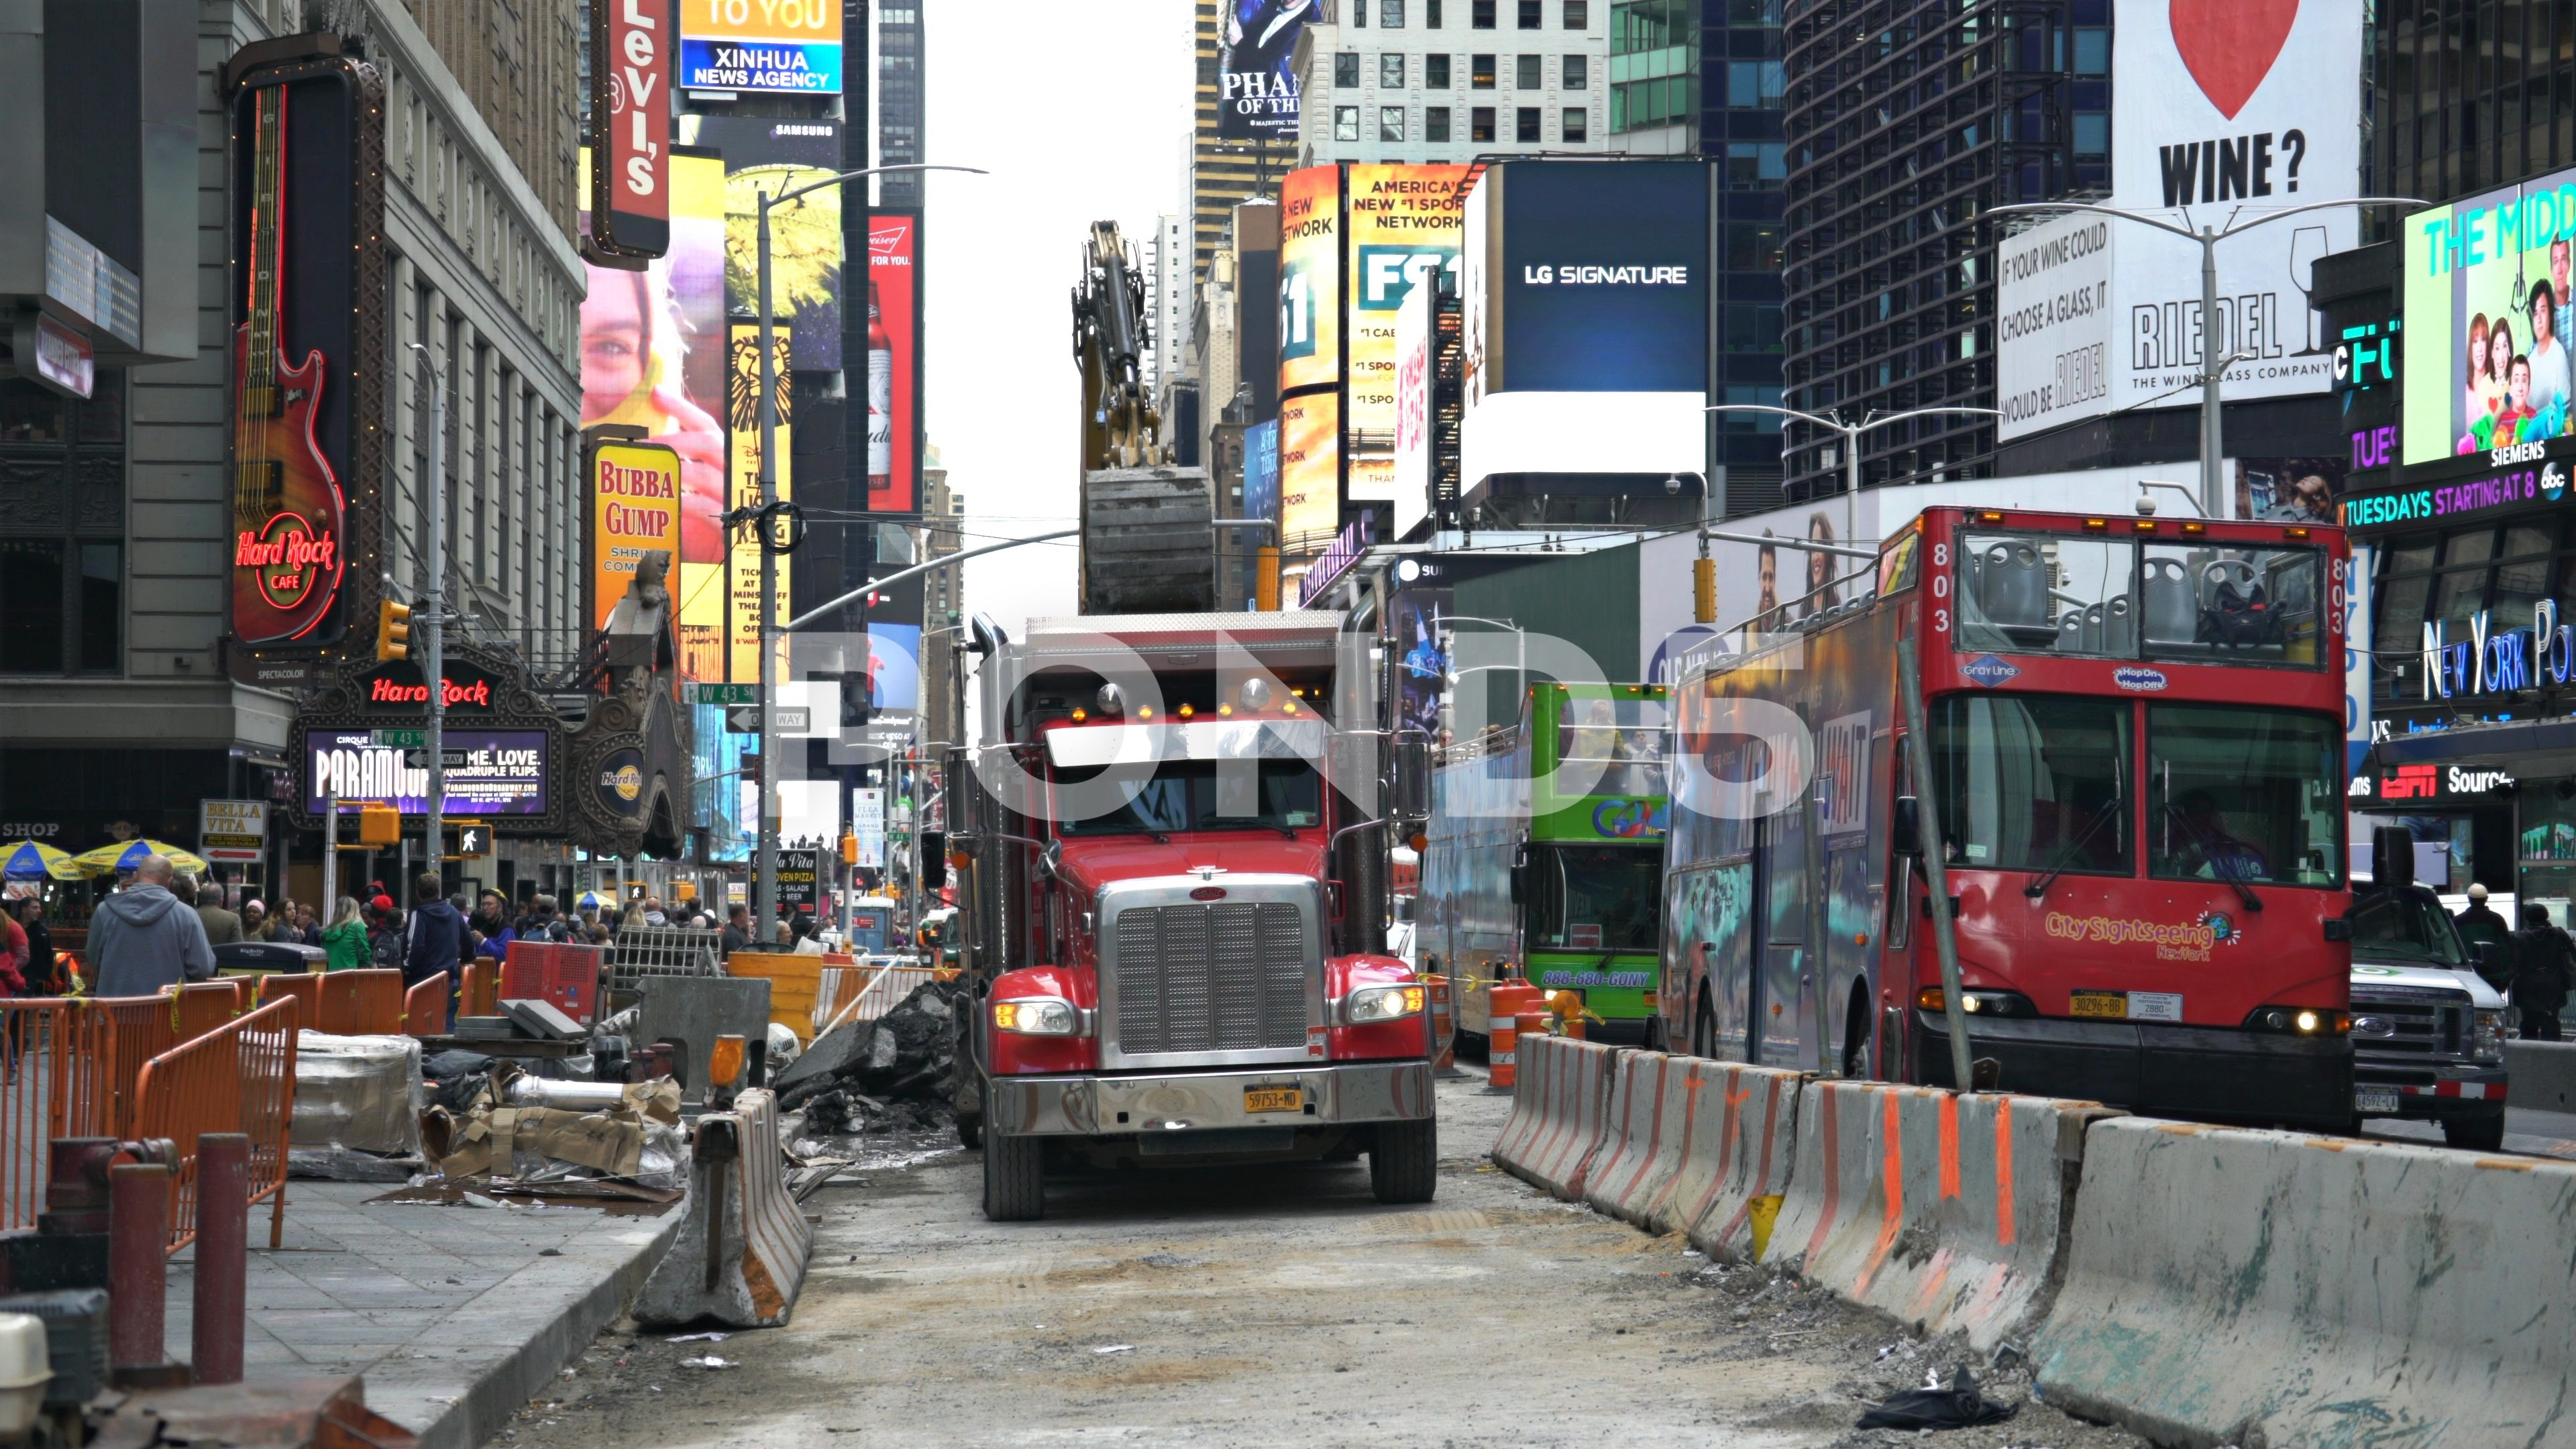 Road Construction In New York City Crowded Street Time Square